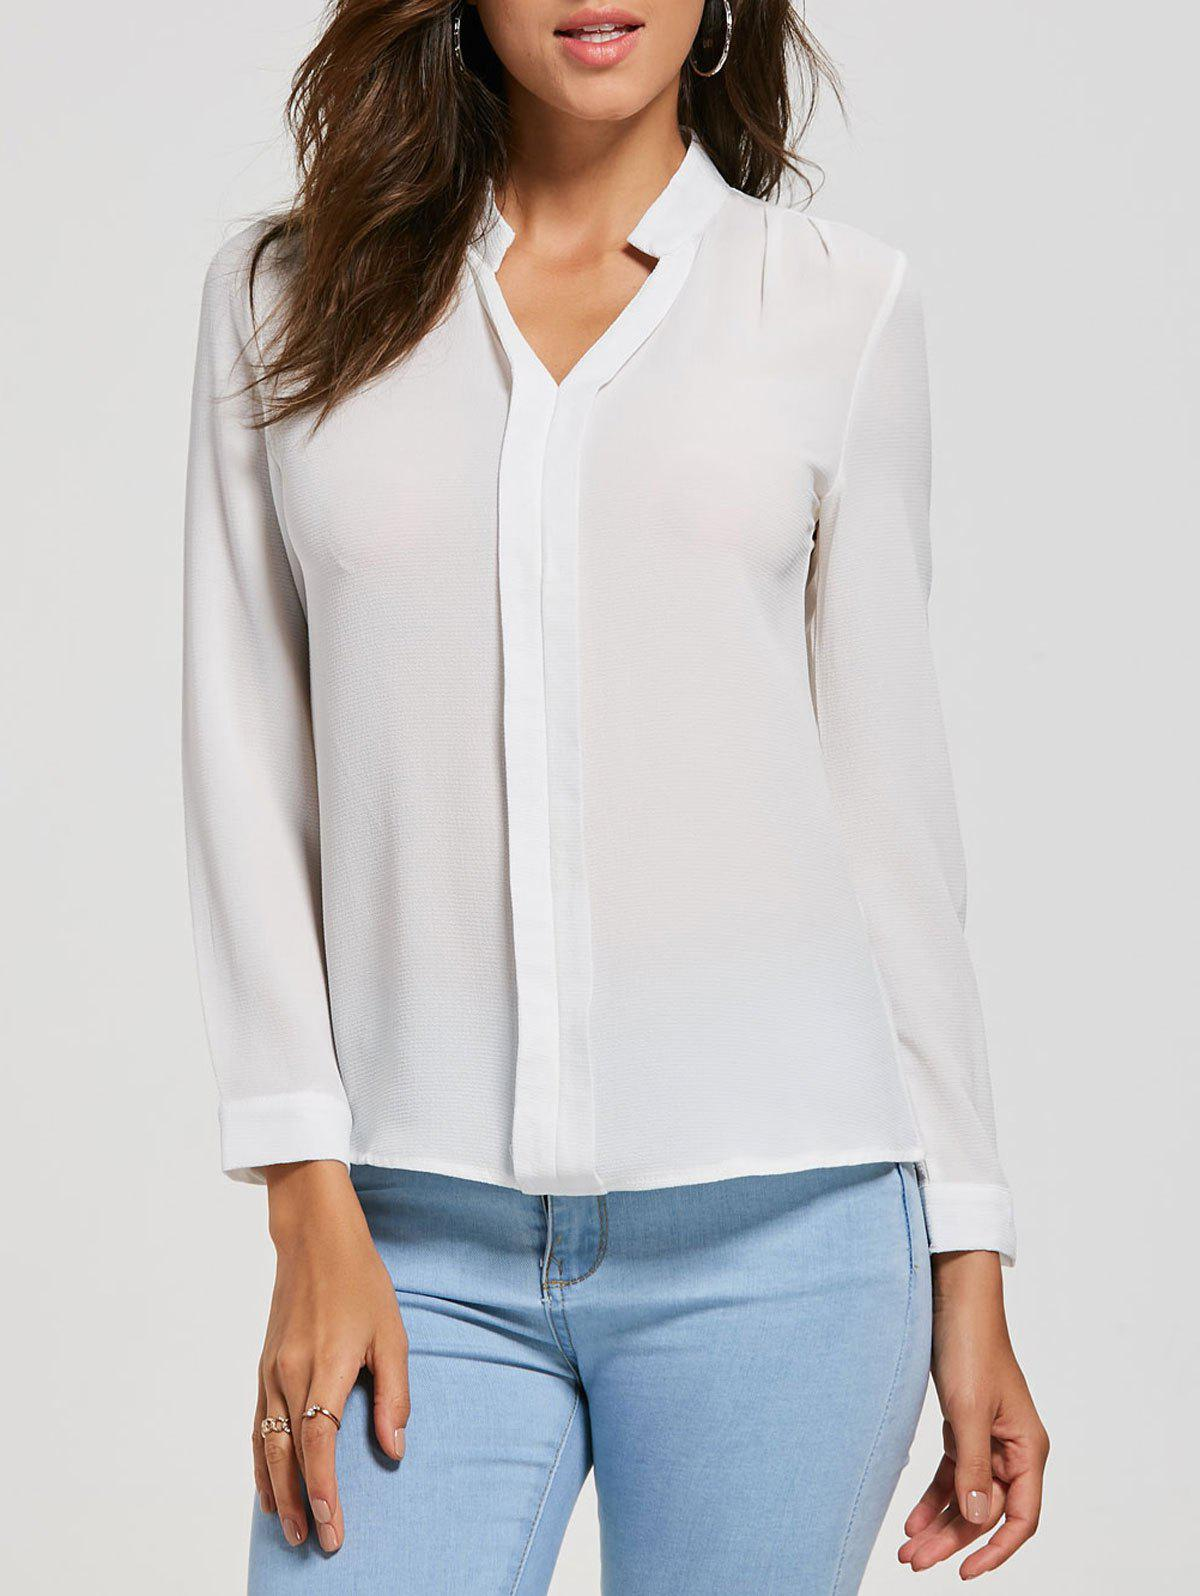 New V Neck Casual Blouse